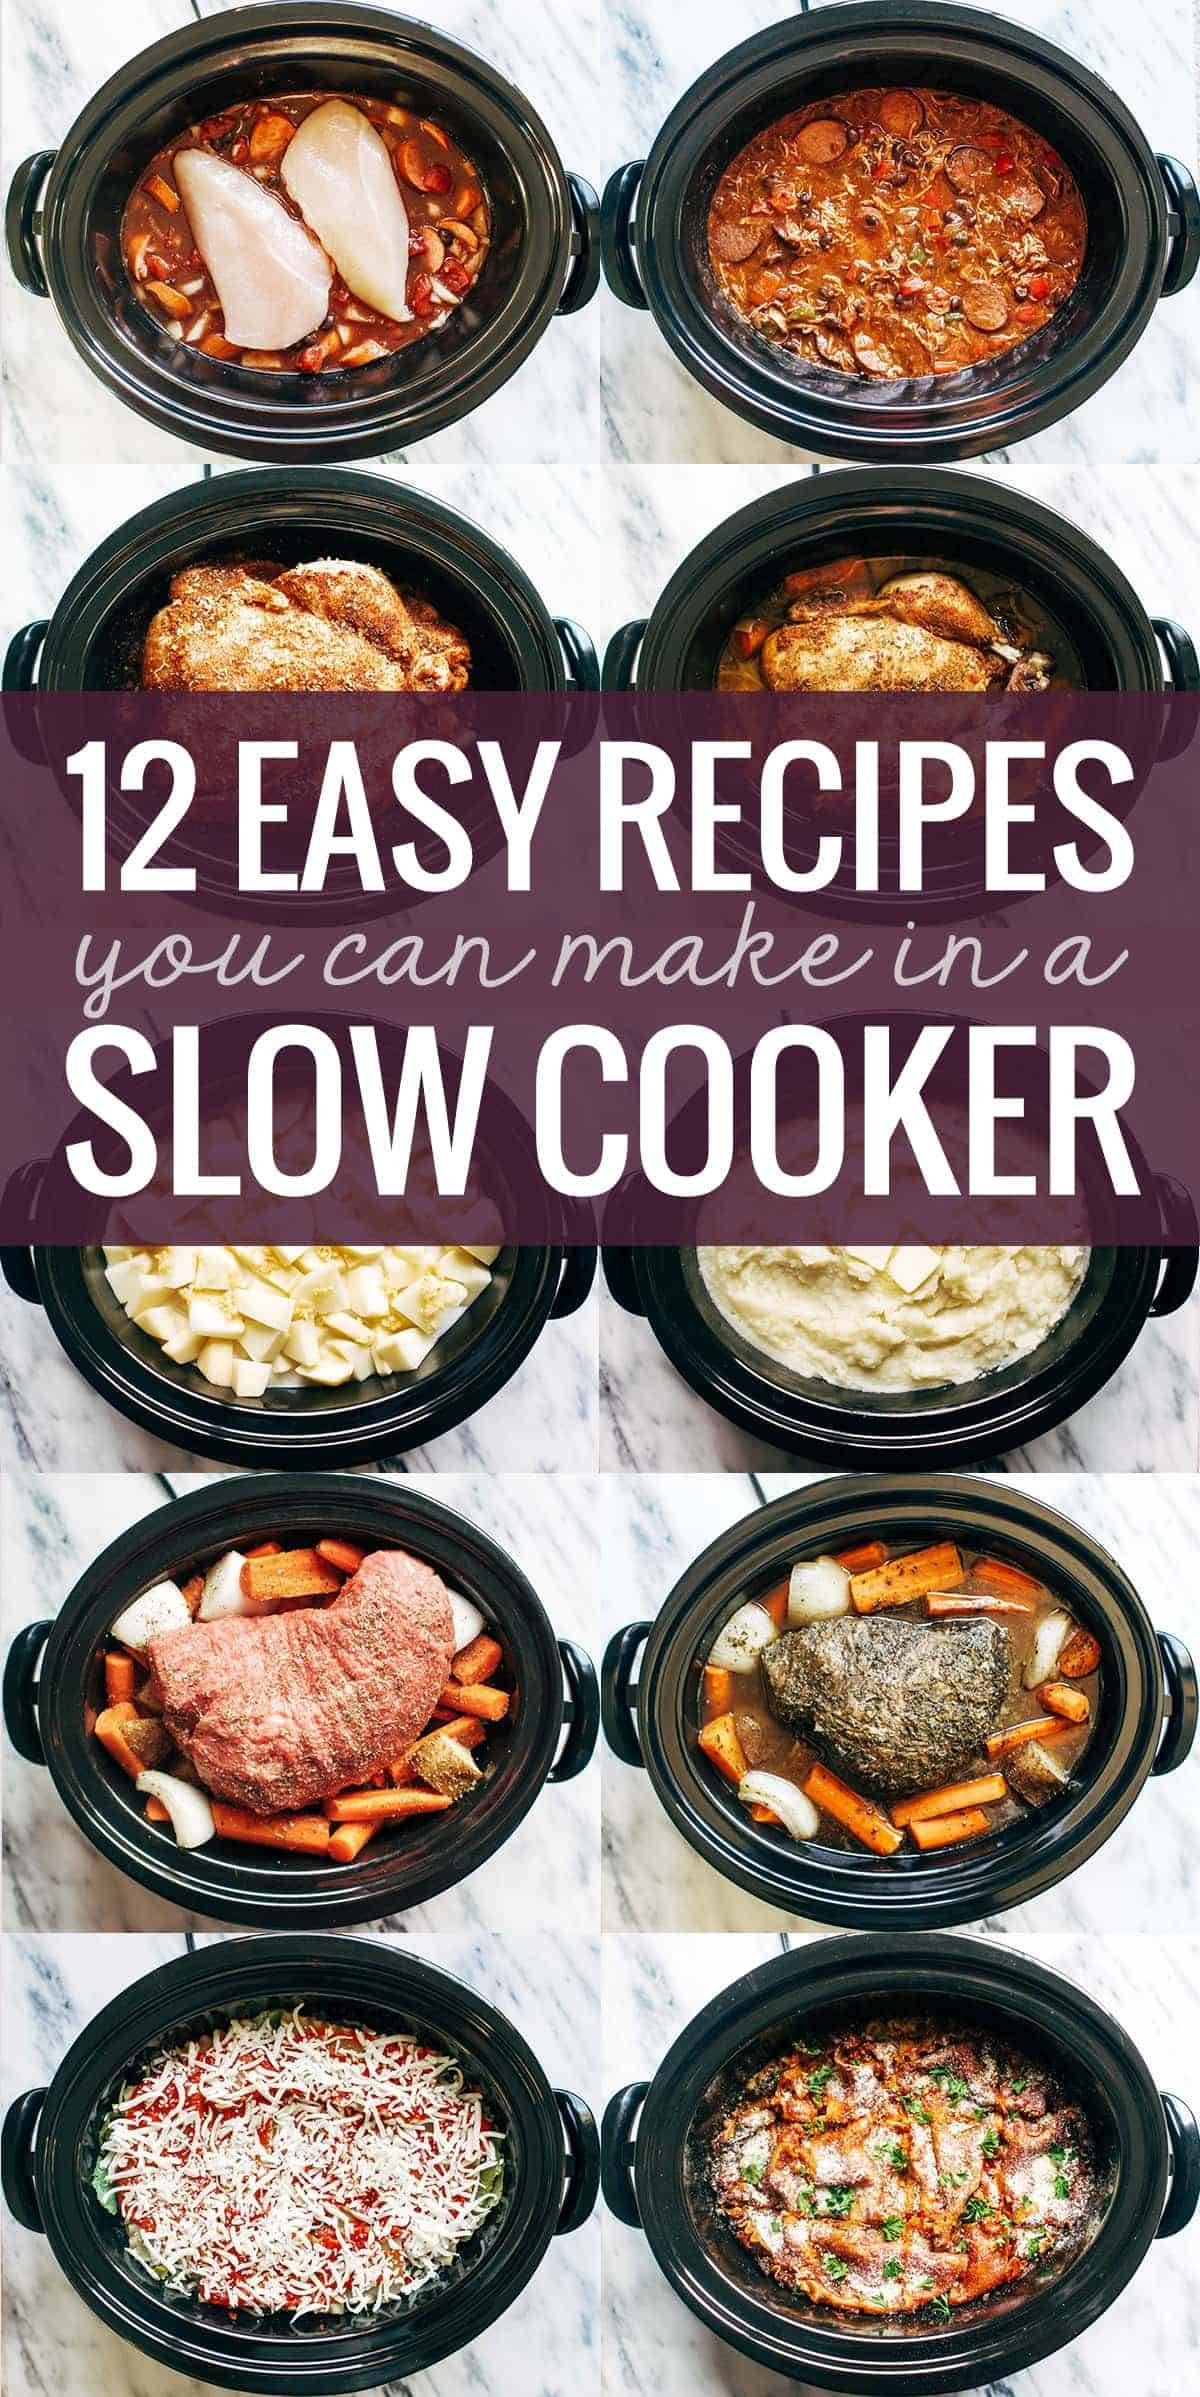 12 easy recipes you can make in a slow cooker pinch of yum 12 easy recipes you can make in a slow cooker forumfinder Image collections